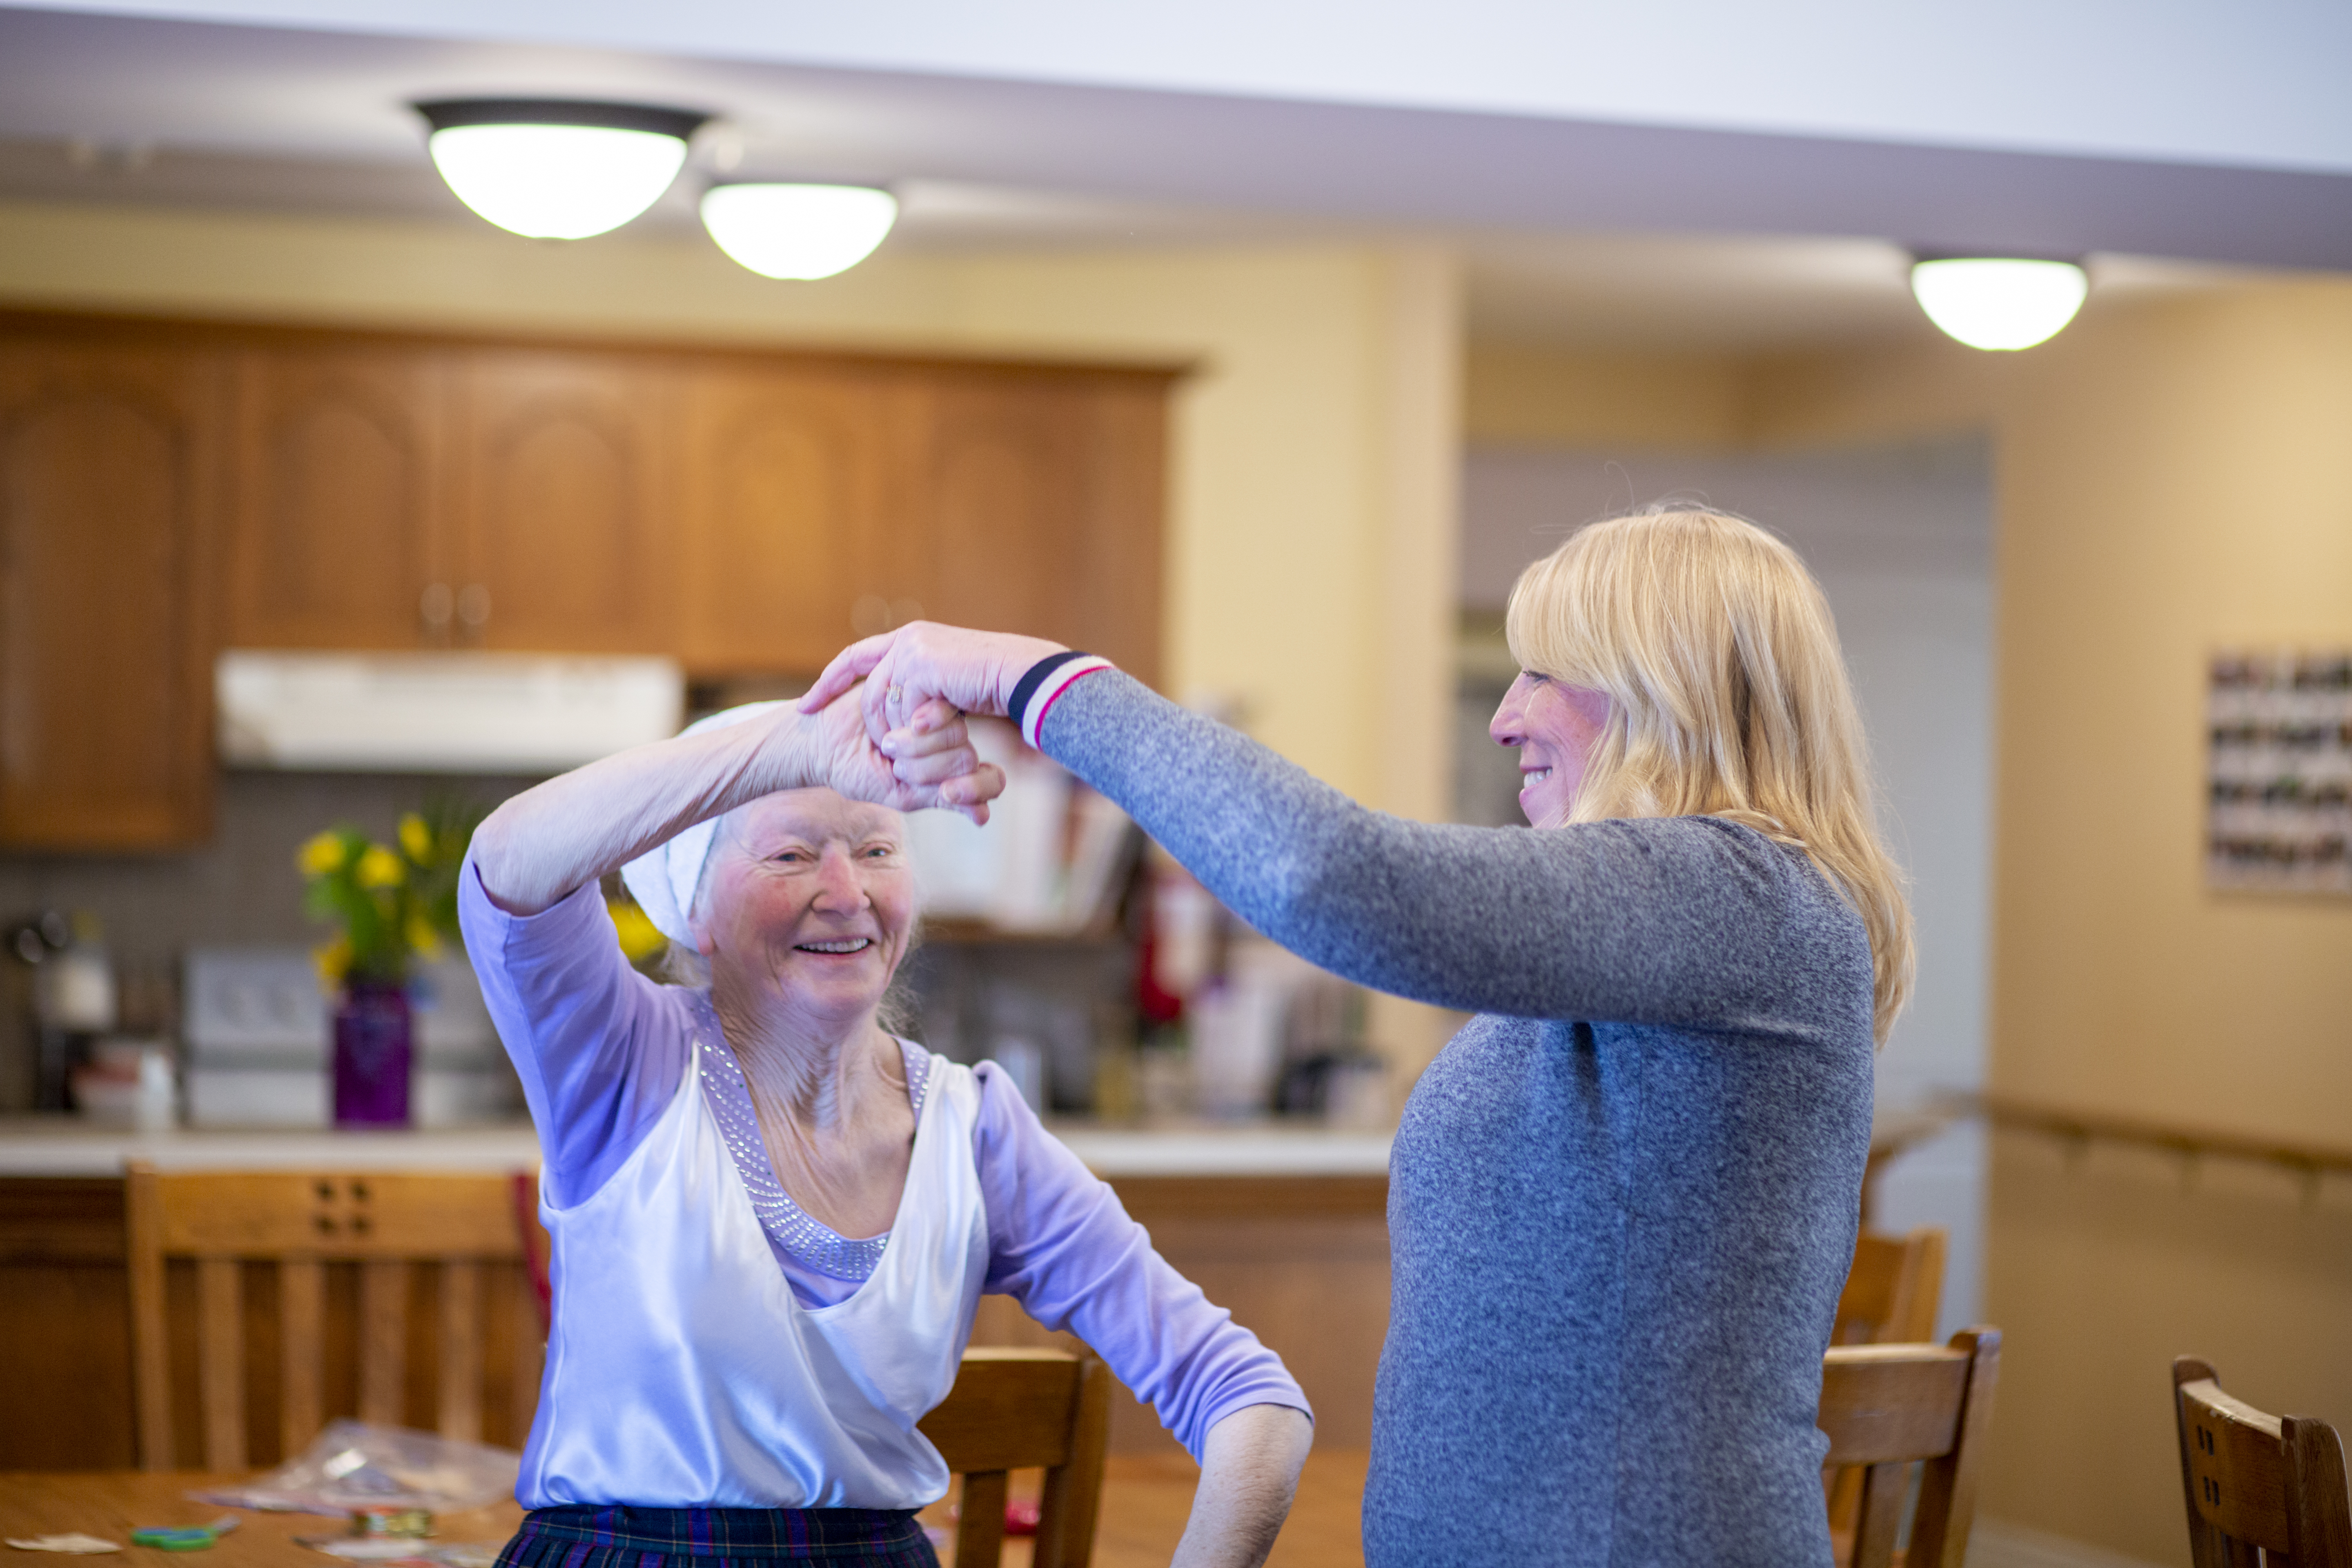 Richmond Care Home resident (left) dancing with staff member.